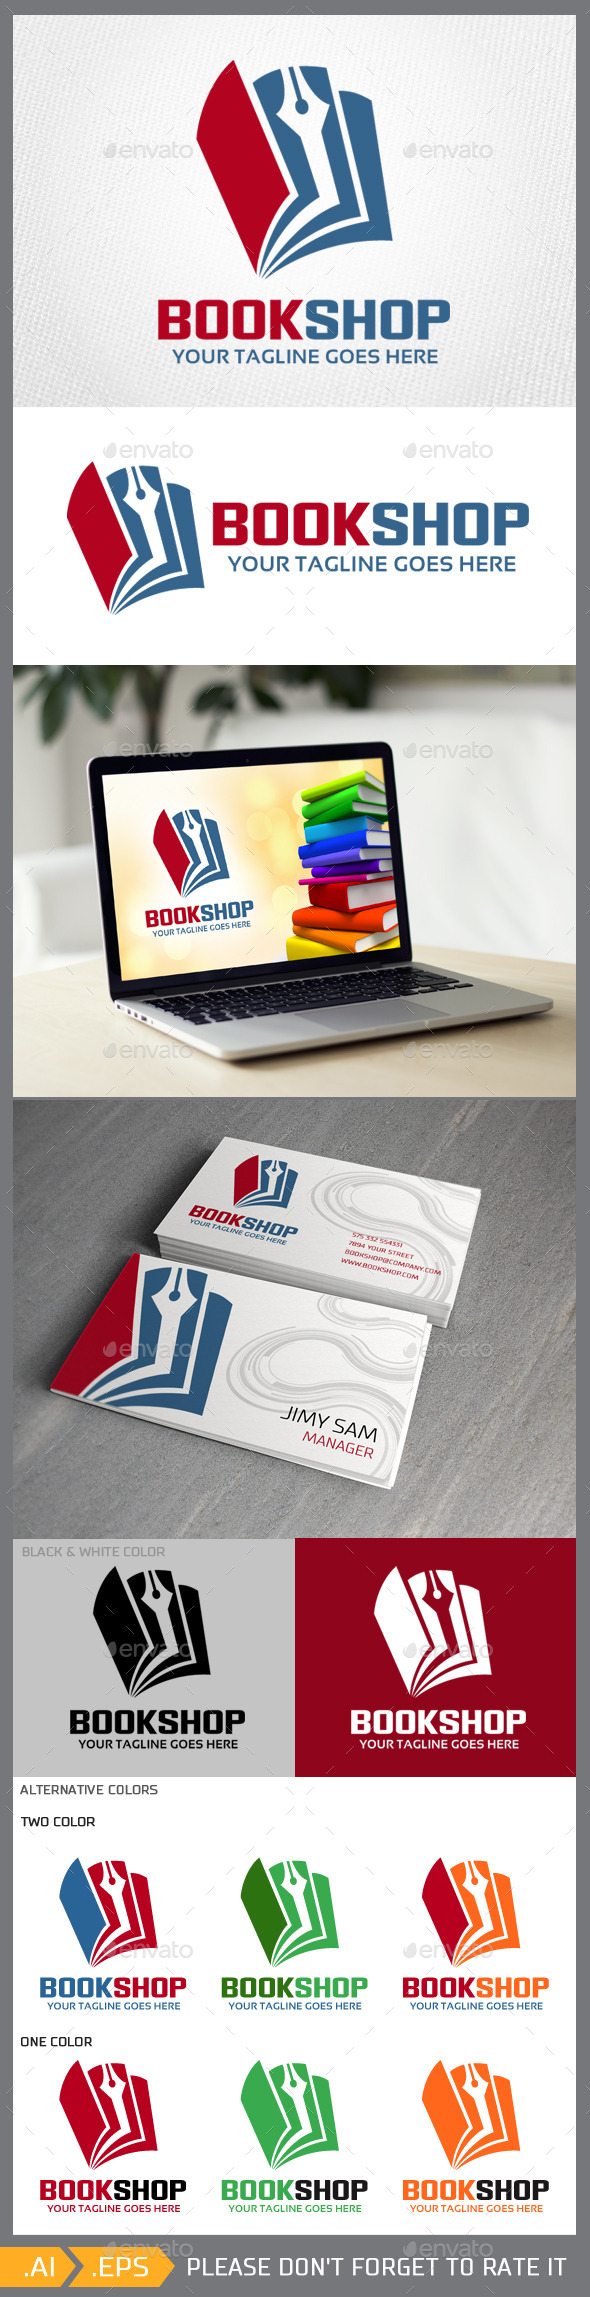 GraphicRiver Bookshop logo template 10315998